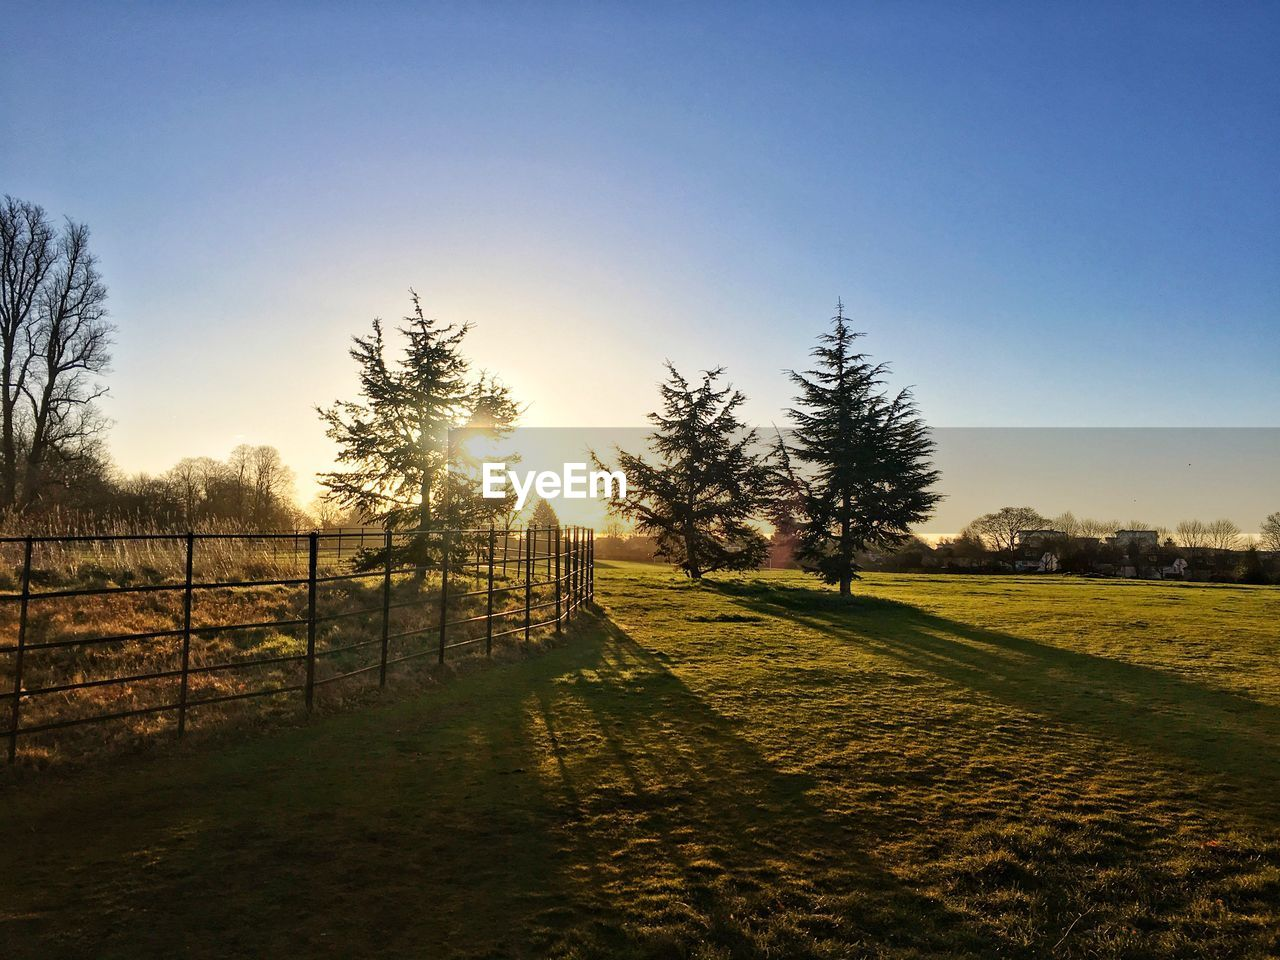 sky, plant, tree, tranquility, tranquil scene, scenics - nature, landscape, field, nature, land, beauty in nature, environment, sunlight, grass, boundary, barrier, fence, no people, clear sky, non-urban scene, outdoors